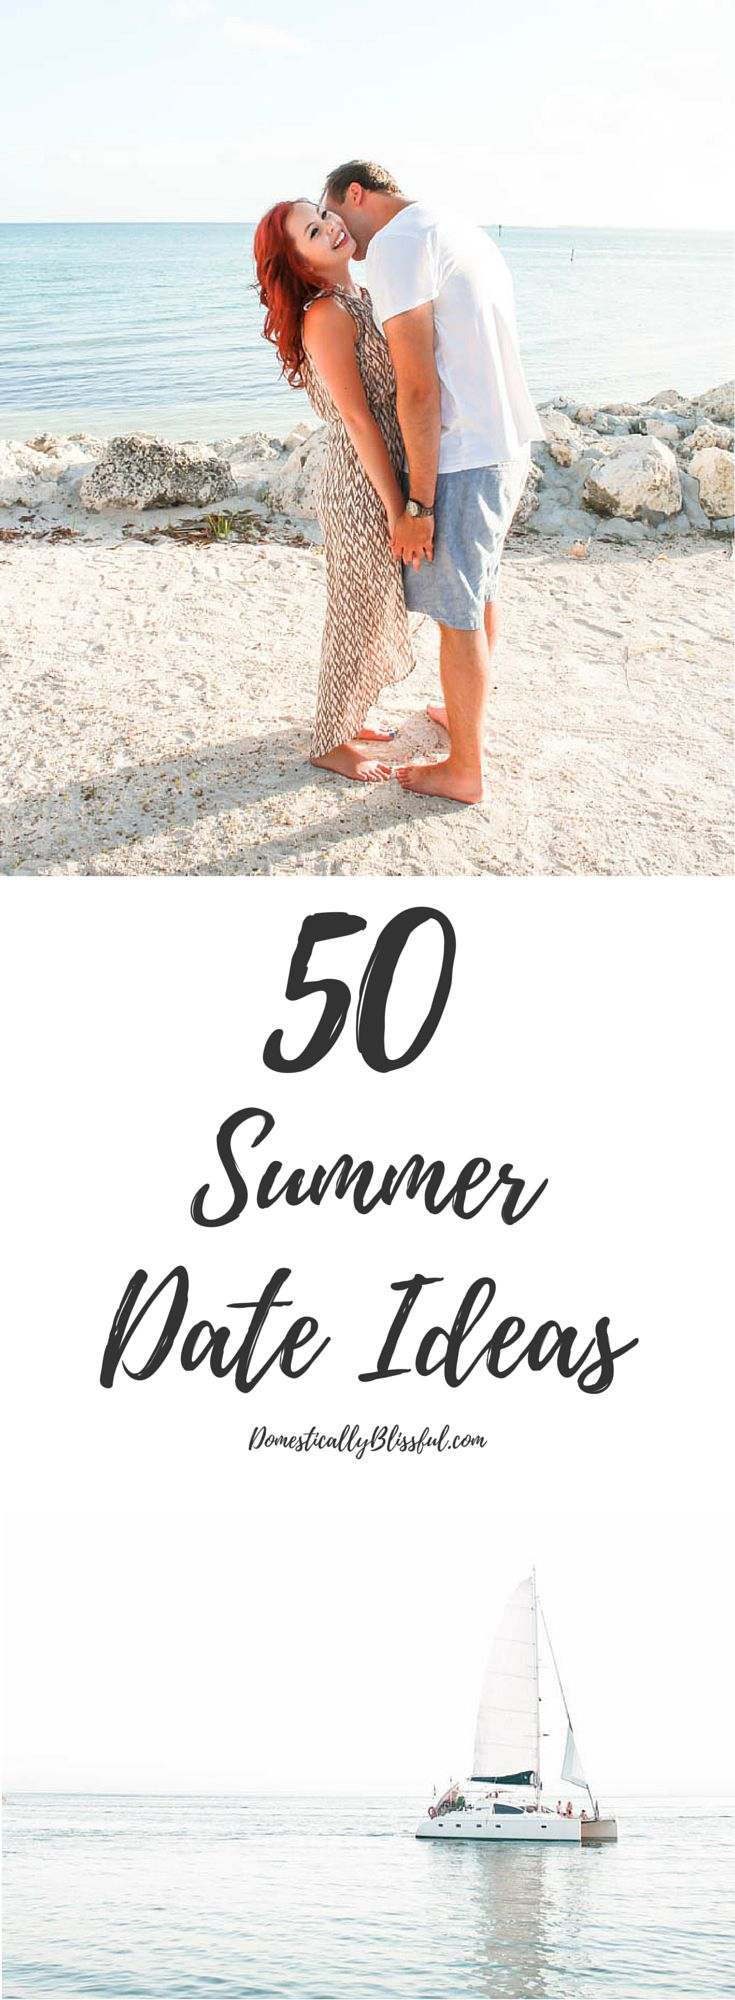 15 best I Love My Hubby images on Pinterest | Date ideas, Romantic ...